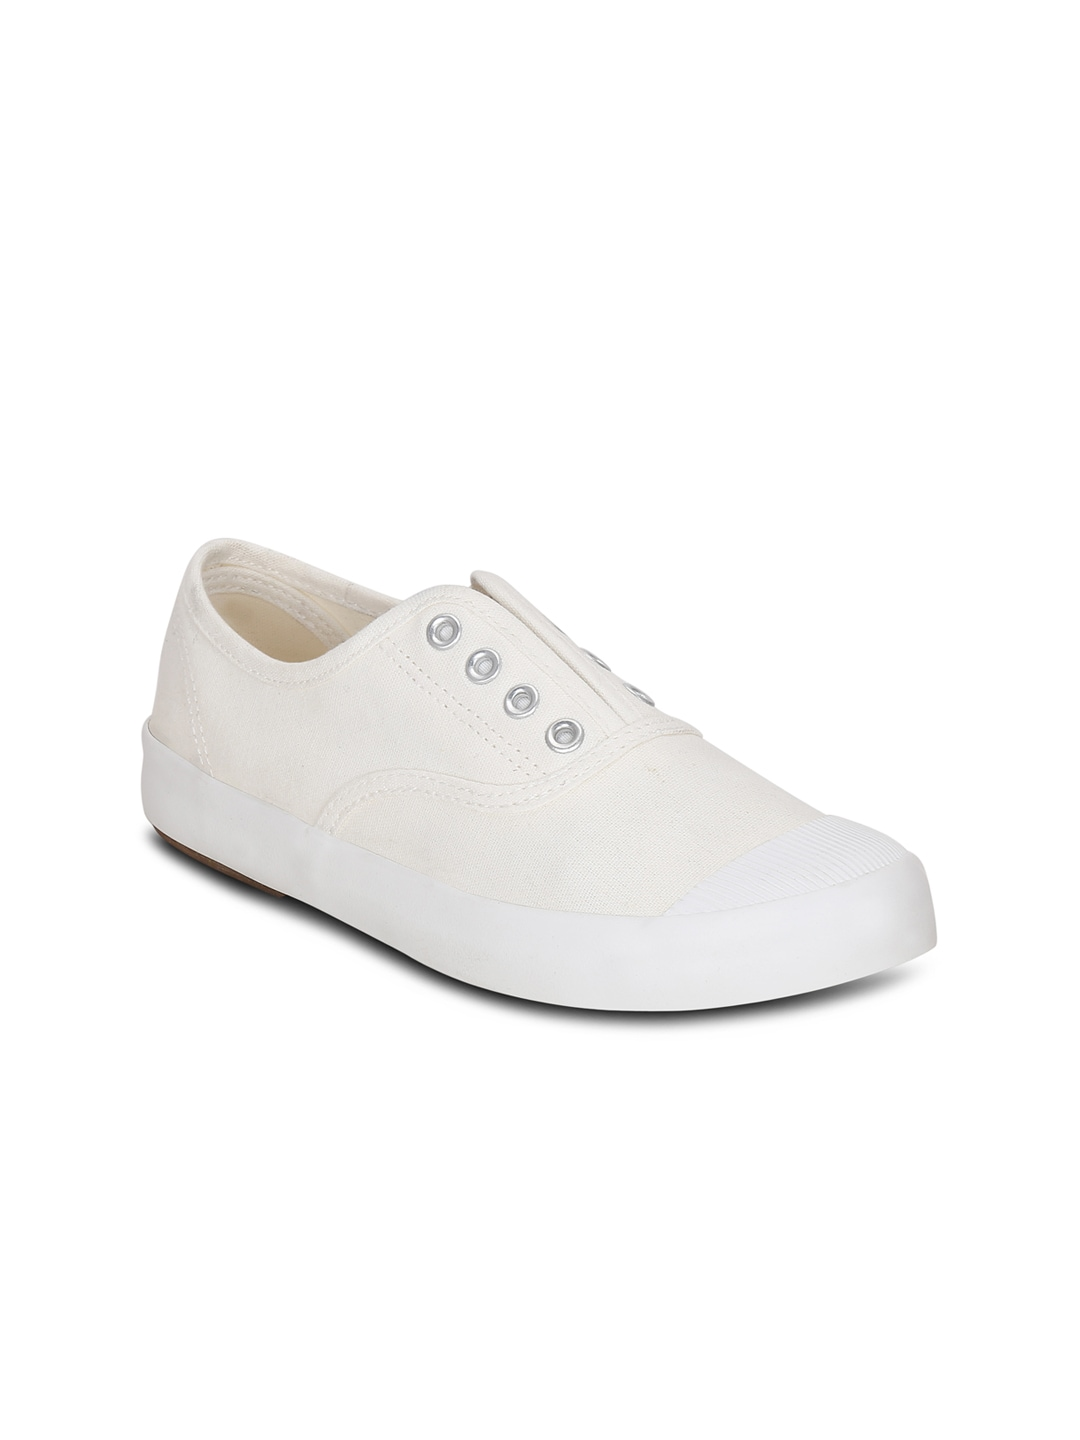 Get Glamr Women White Slip-On Sneakers image